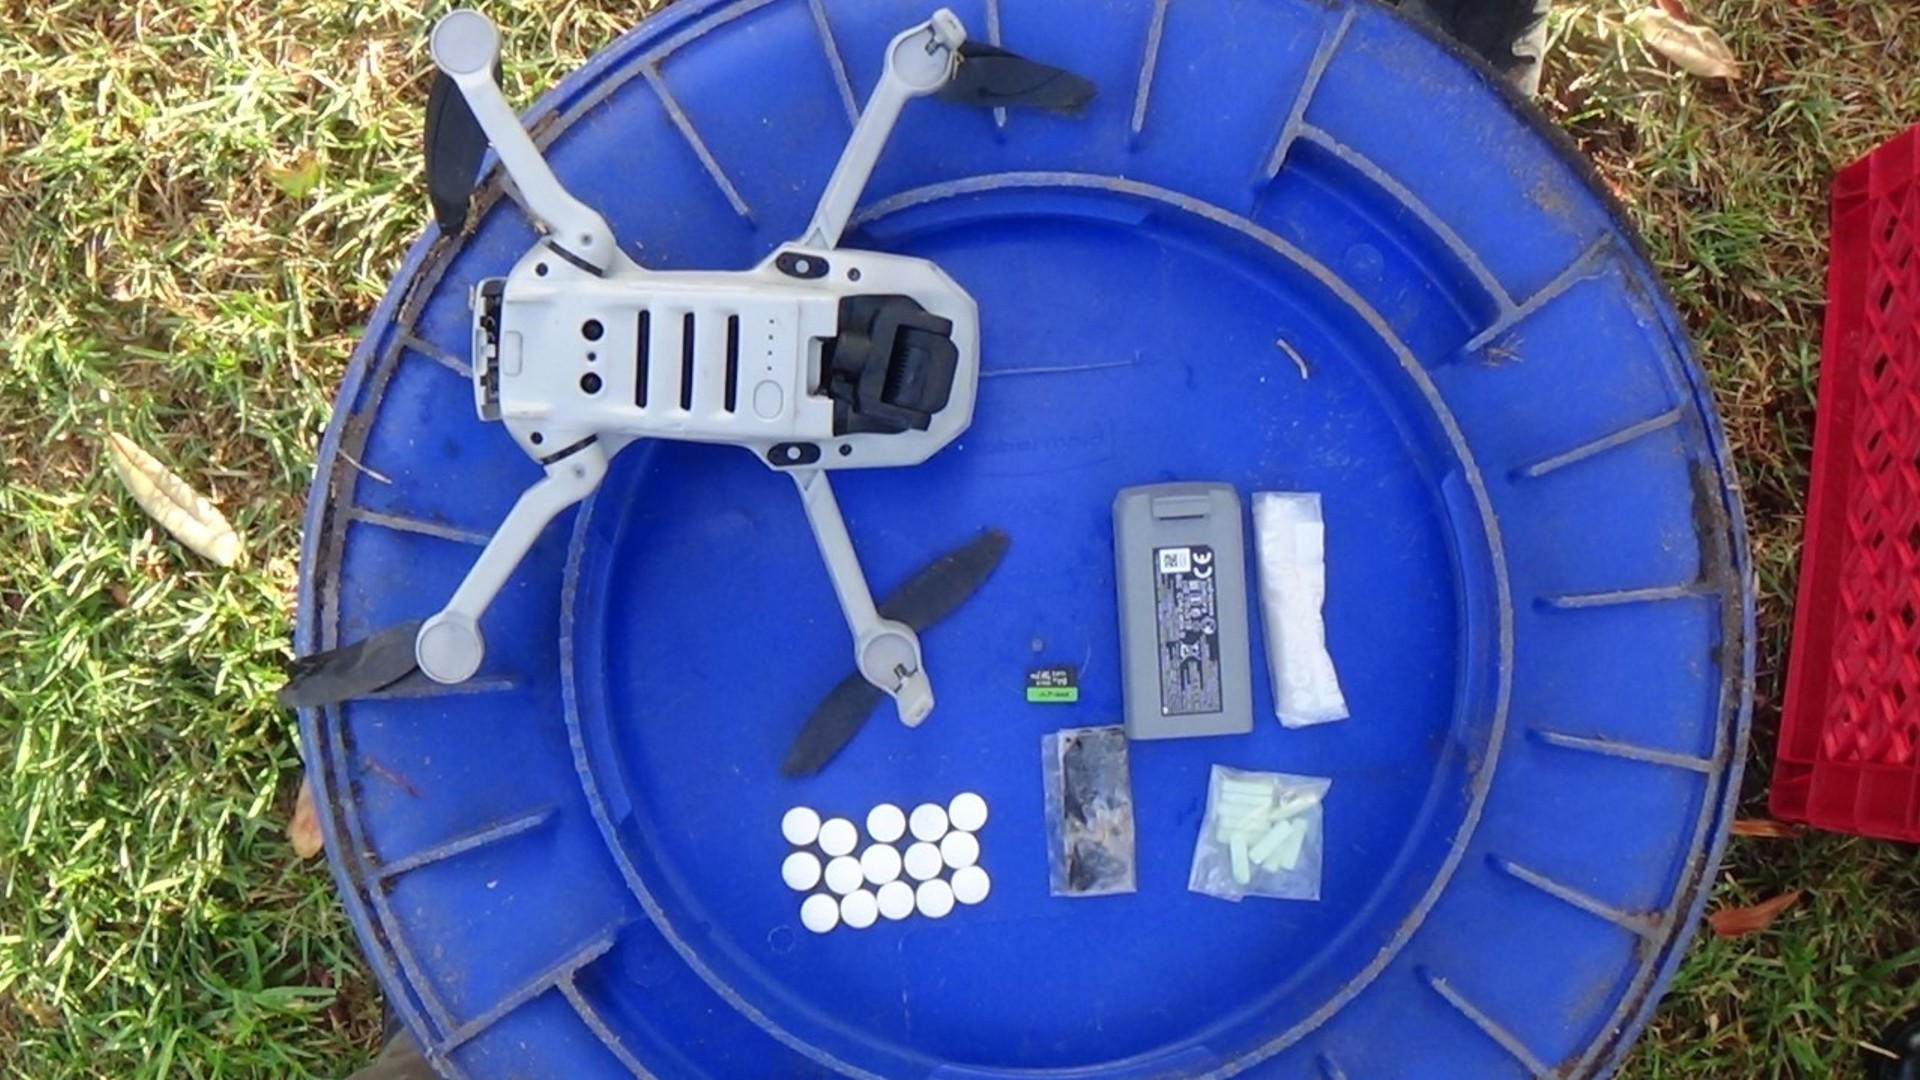 The Orange County Sheriff's Department released this photo of the drone that landed at the Theo Lacy Facility in Orange.